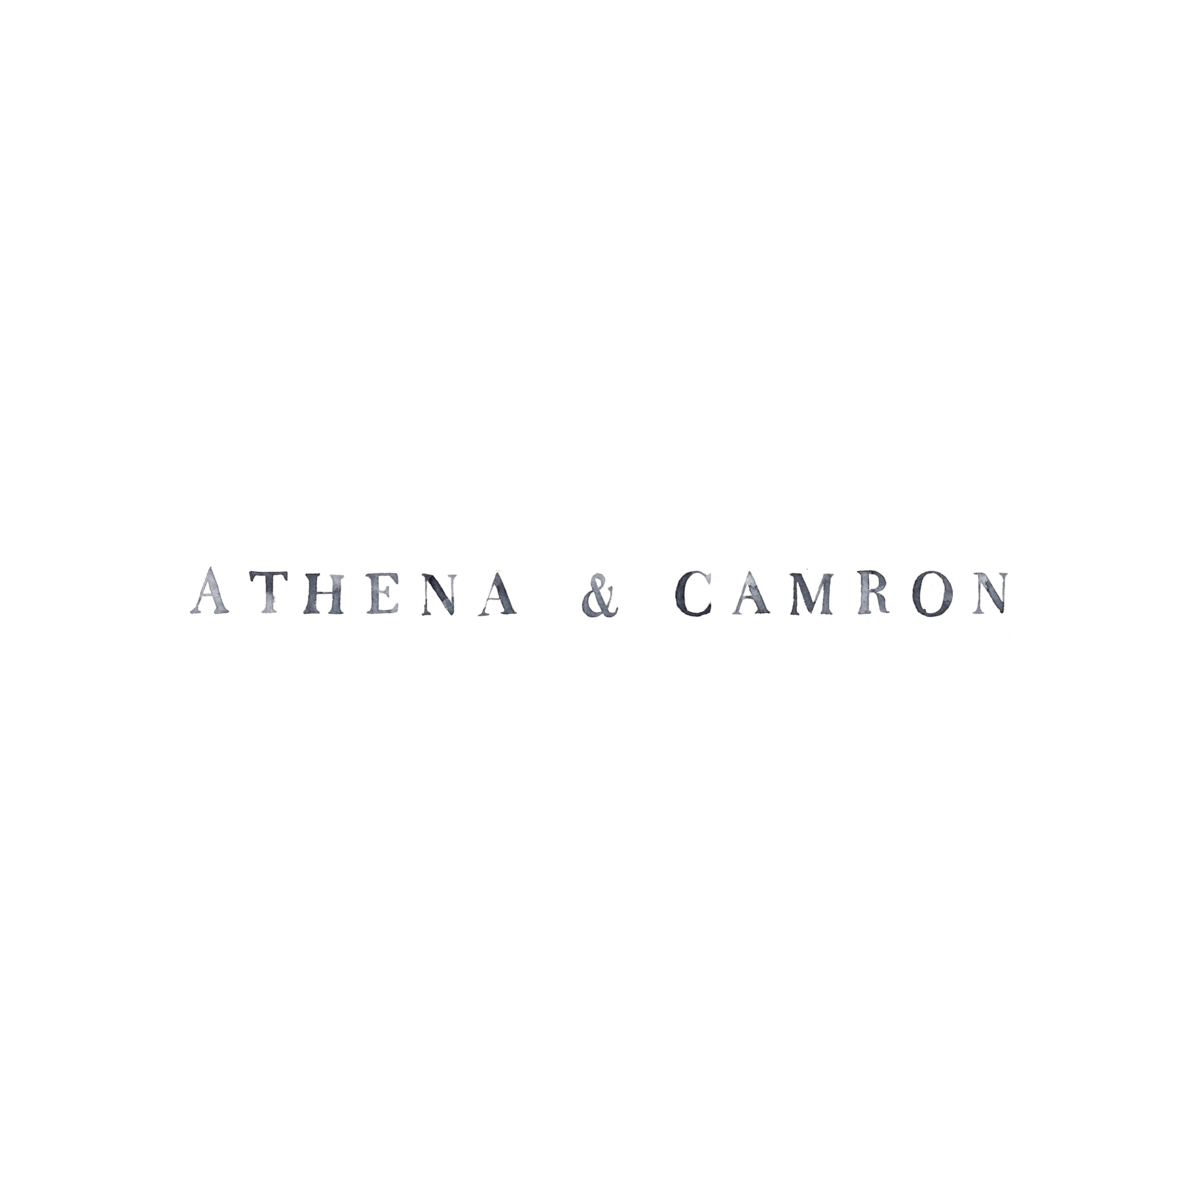 Athena&Camron-transparent